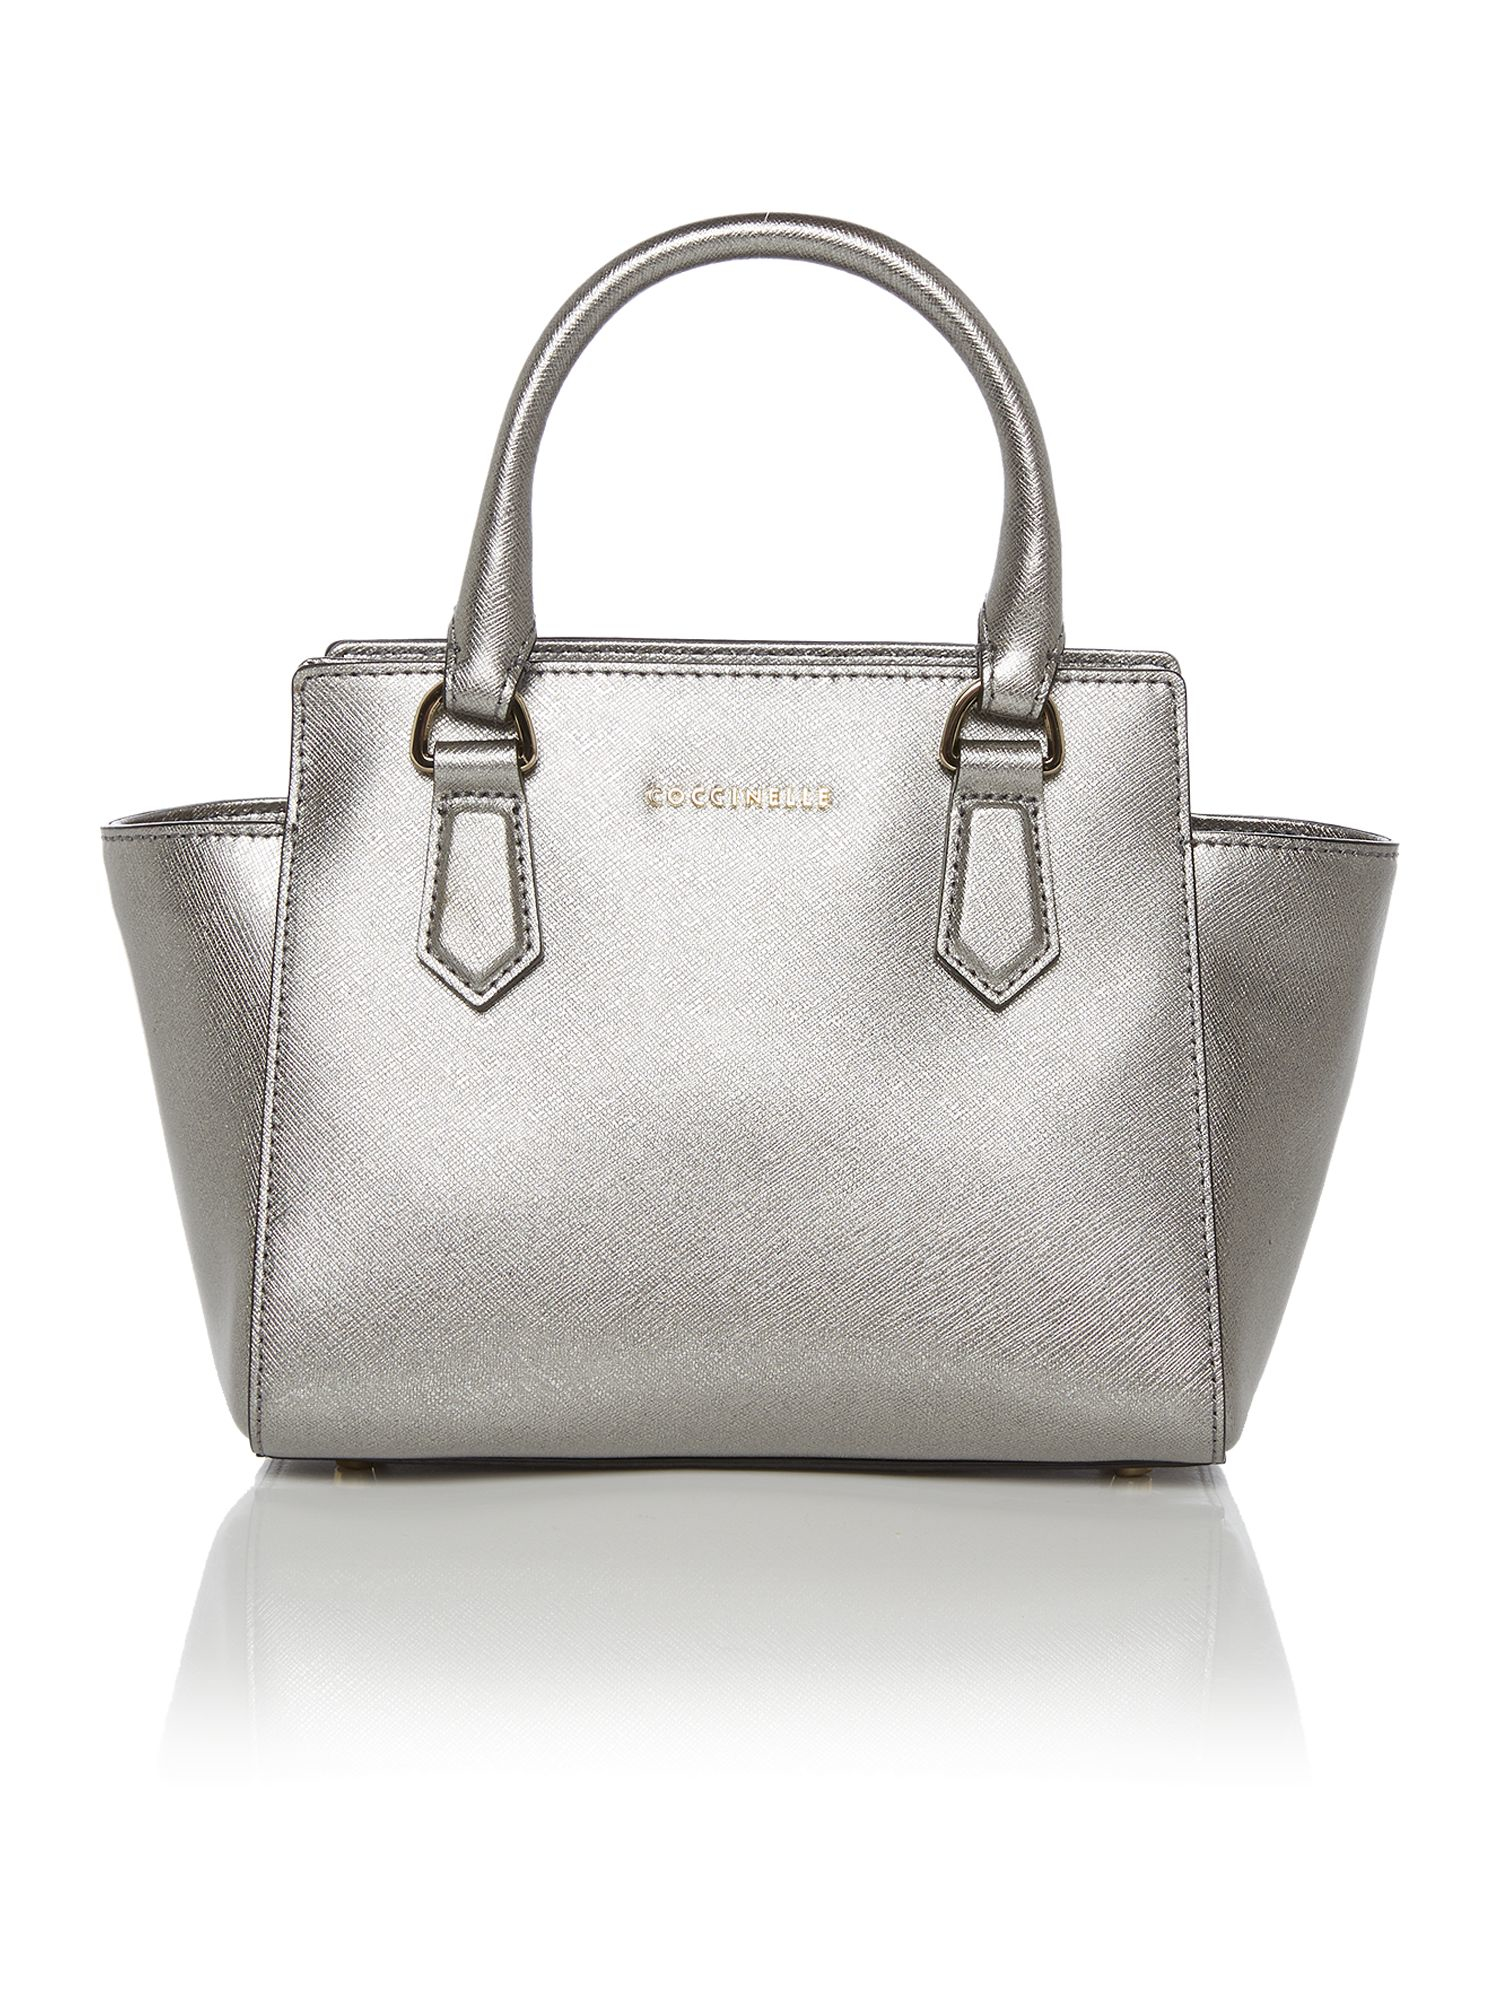 Coccinelle Blanche Silver Tote Bag in Metallic